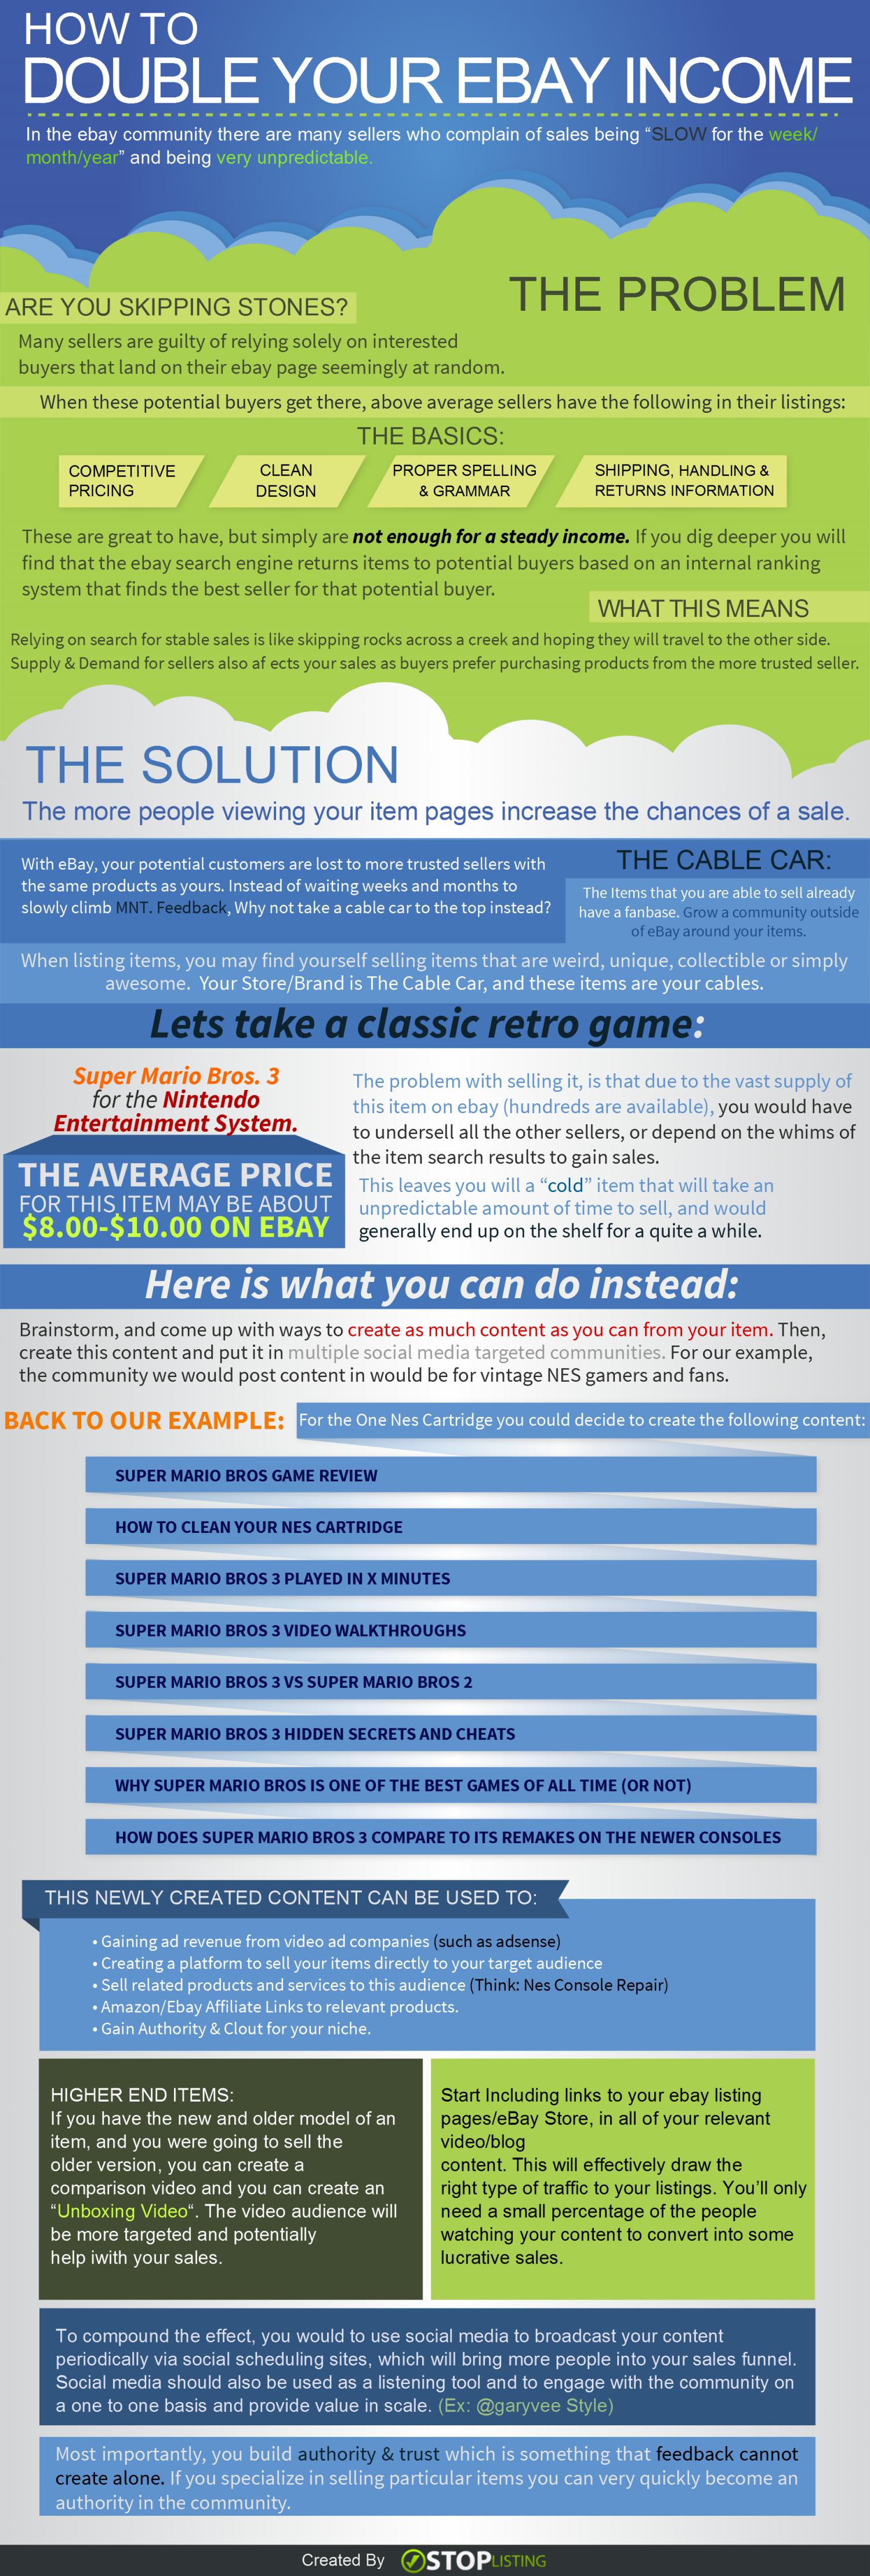 How to Double Your Ebay Income [Infographic]